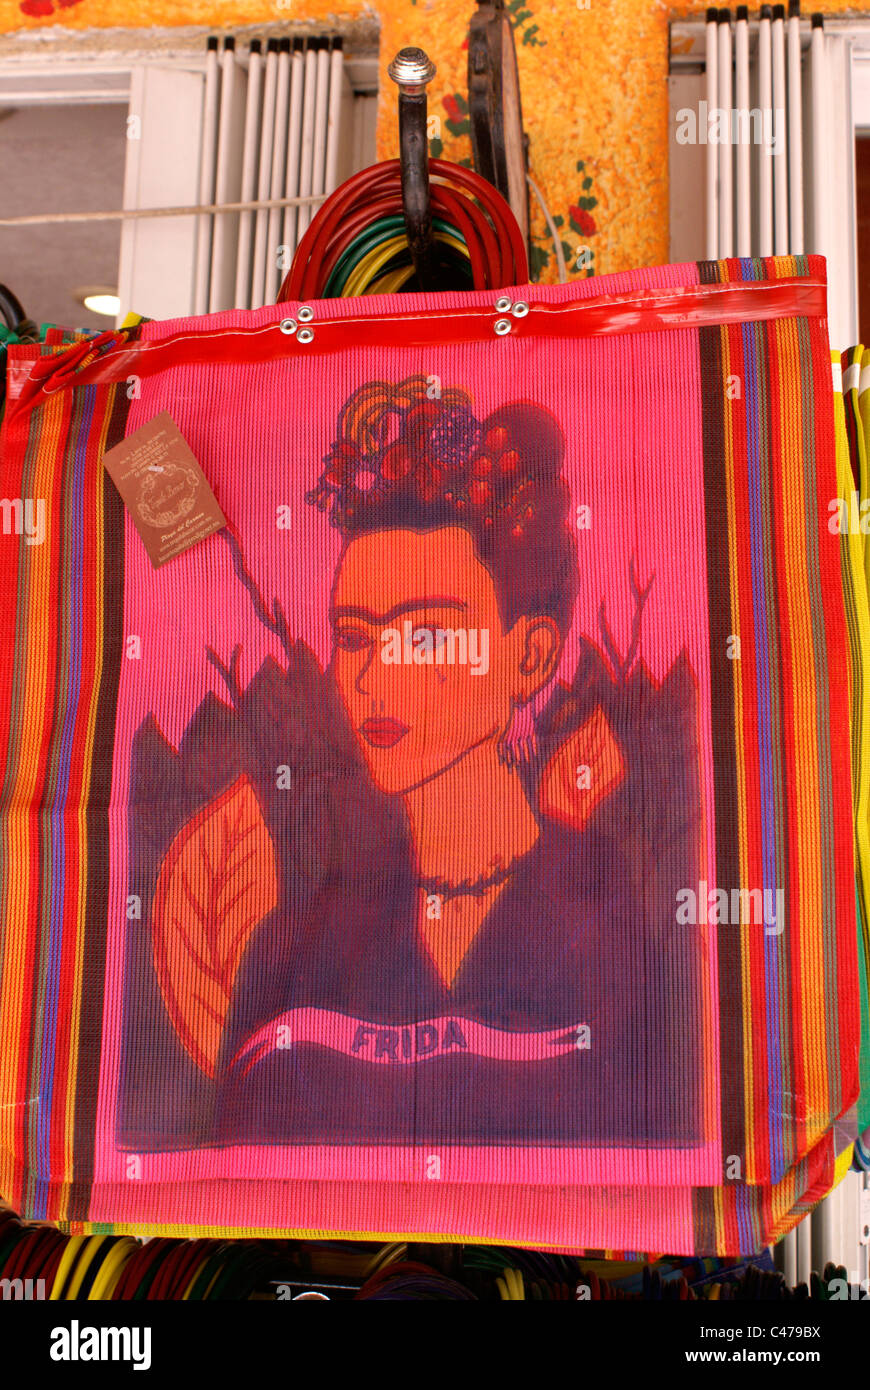 portrait-of-frida-kahlo-on-shopping-bags